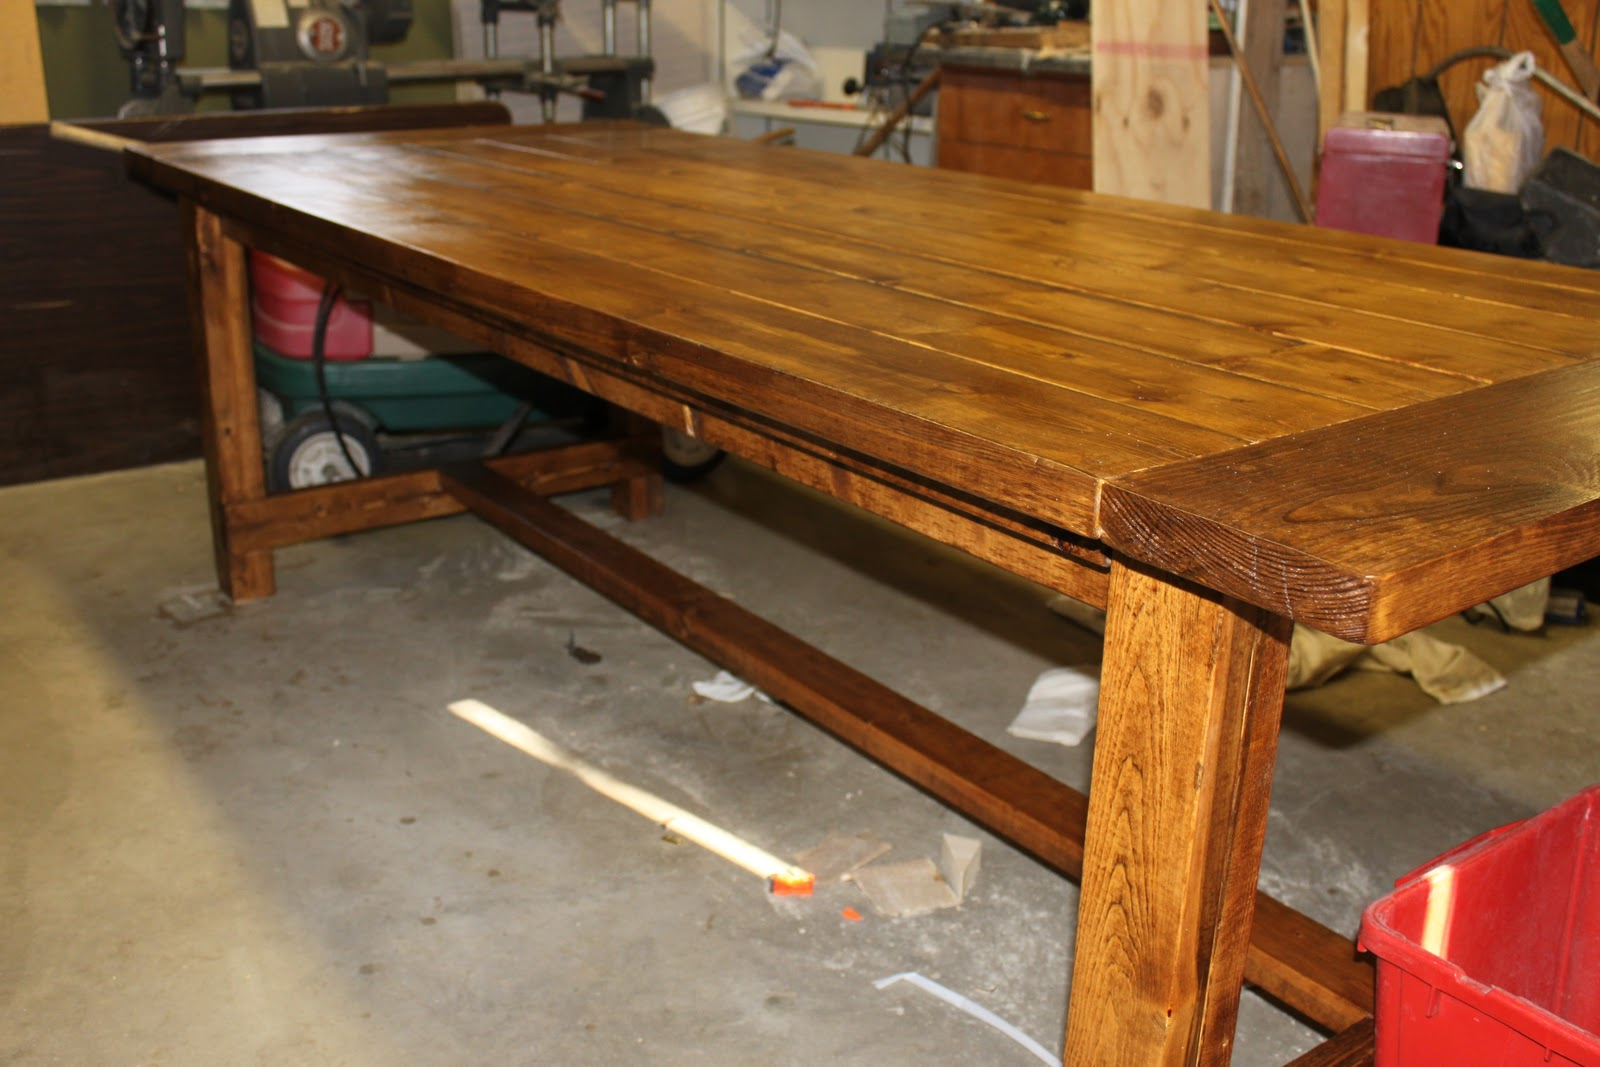 making a dining room table | Make a Table for Your Dining Room | Sidetracked Sarah